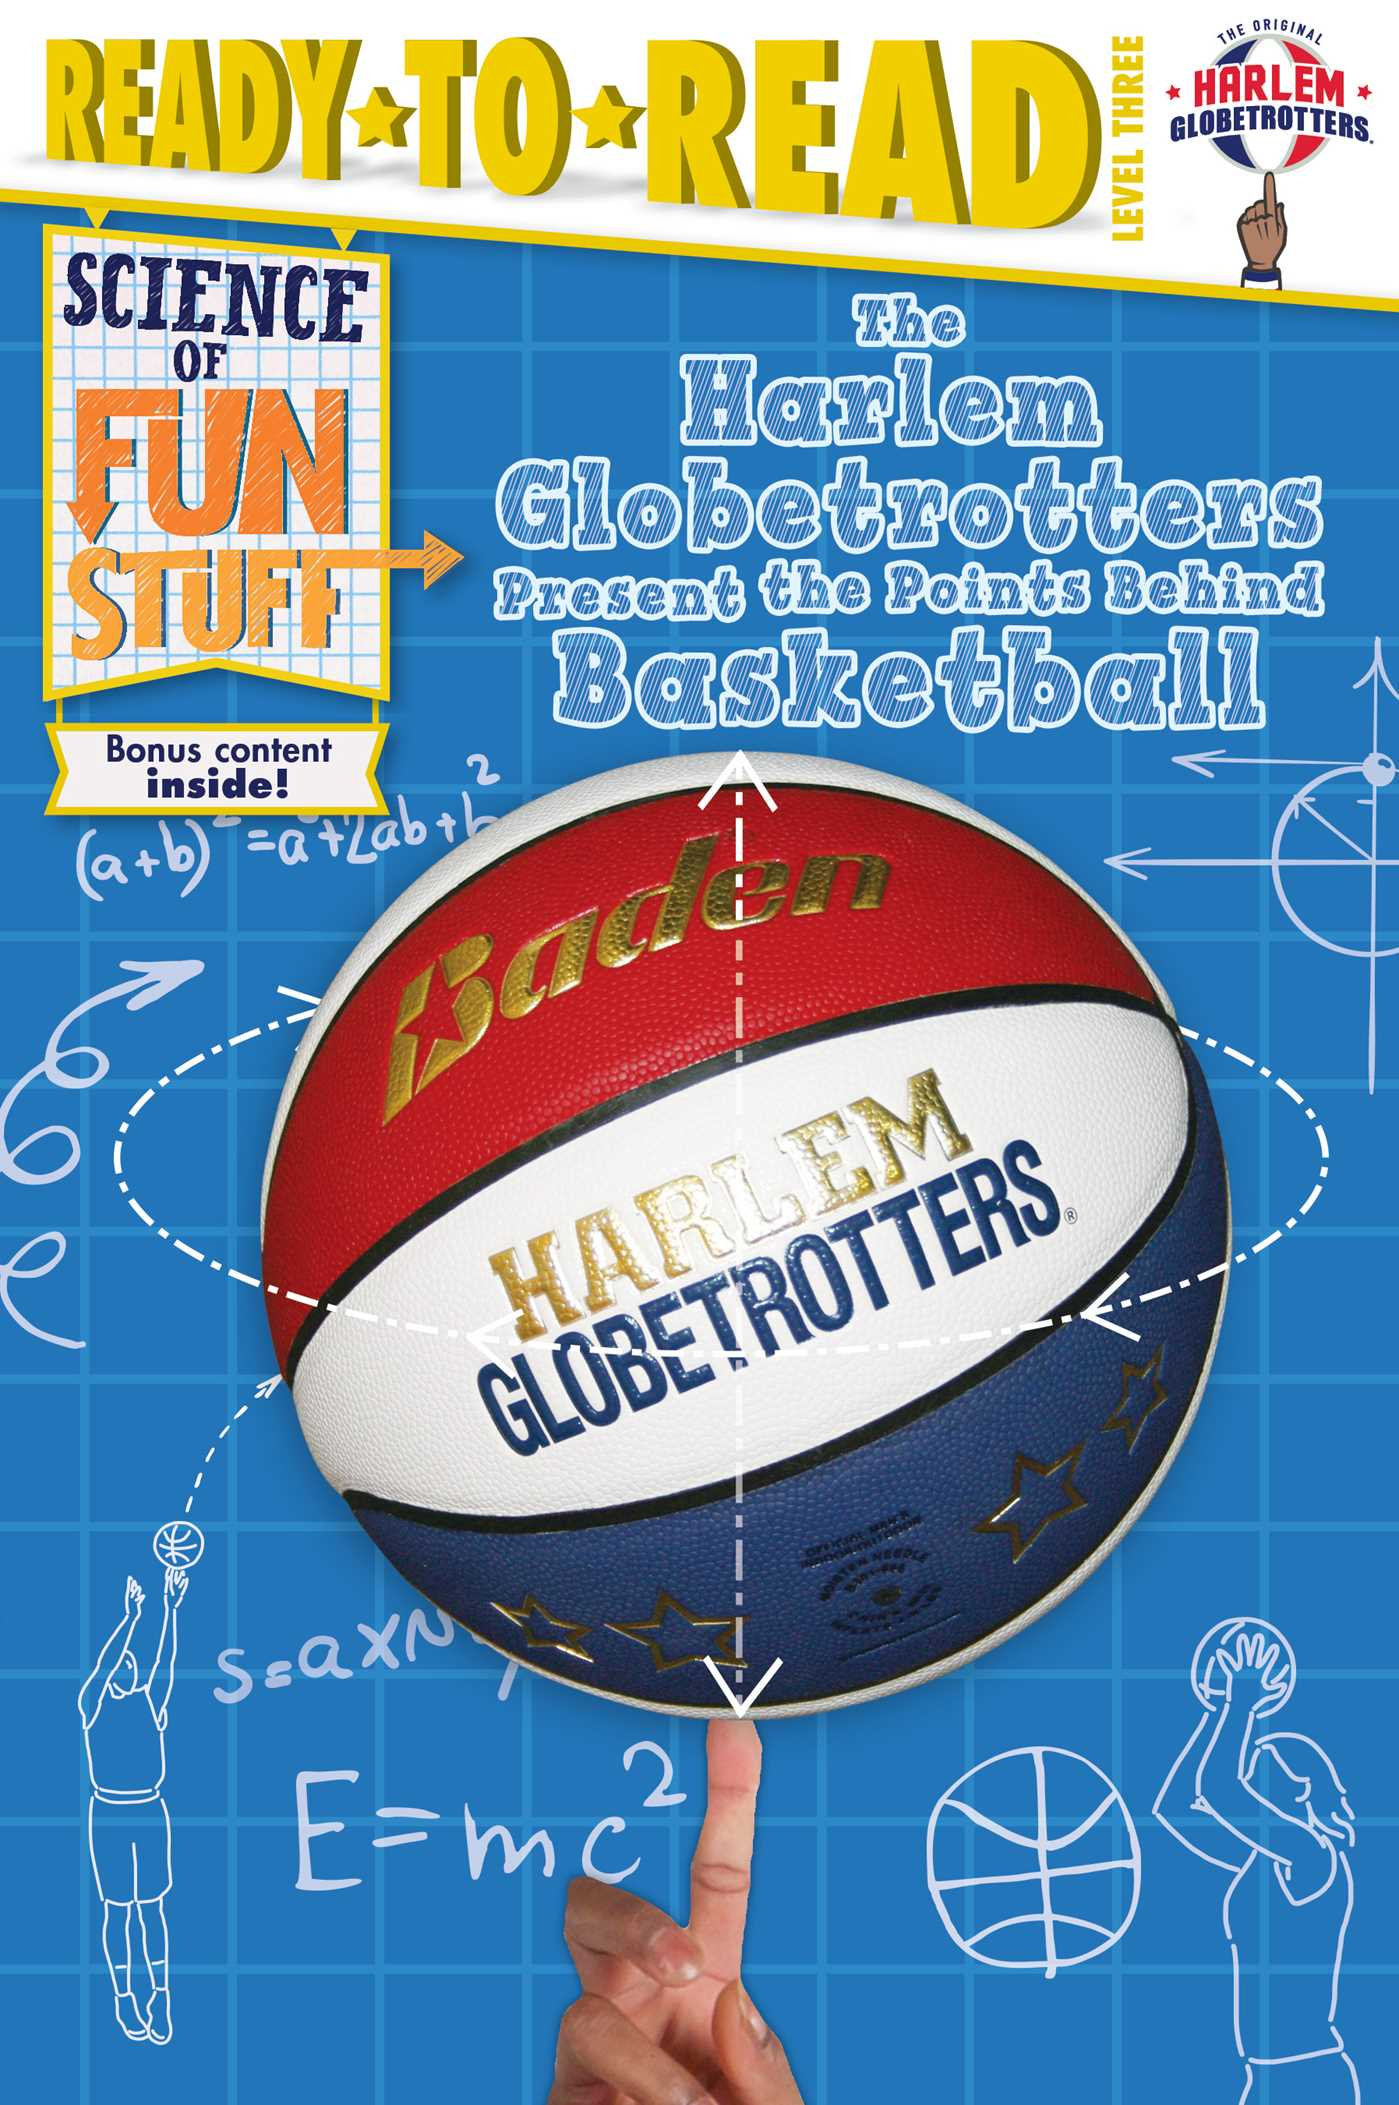 The harlem globetrotters present the points behind basketball 9781481487511 hr